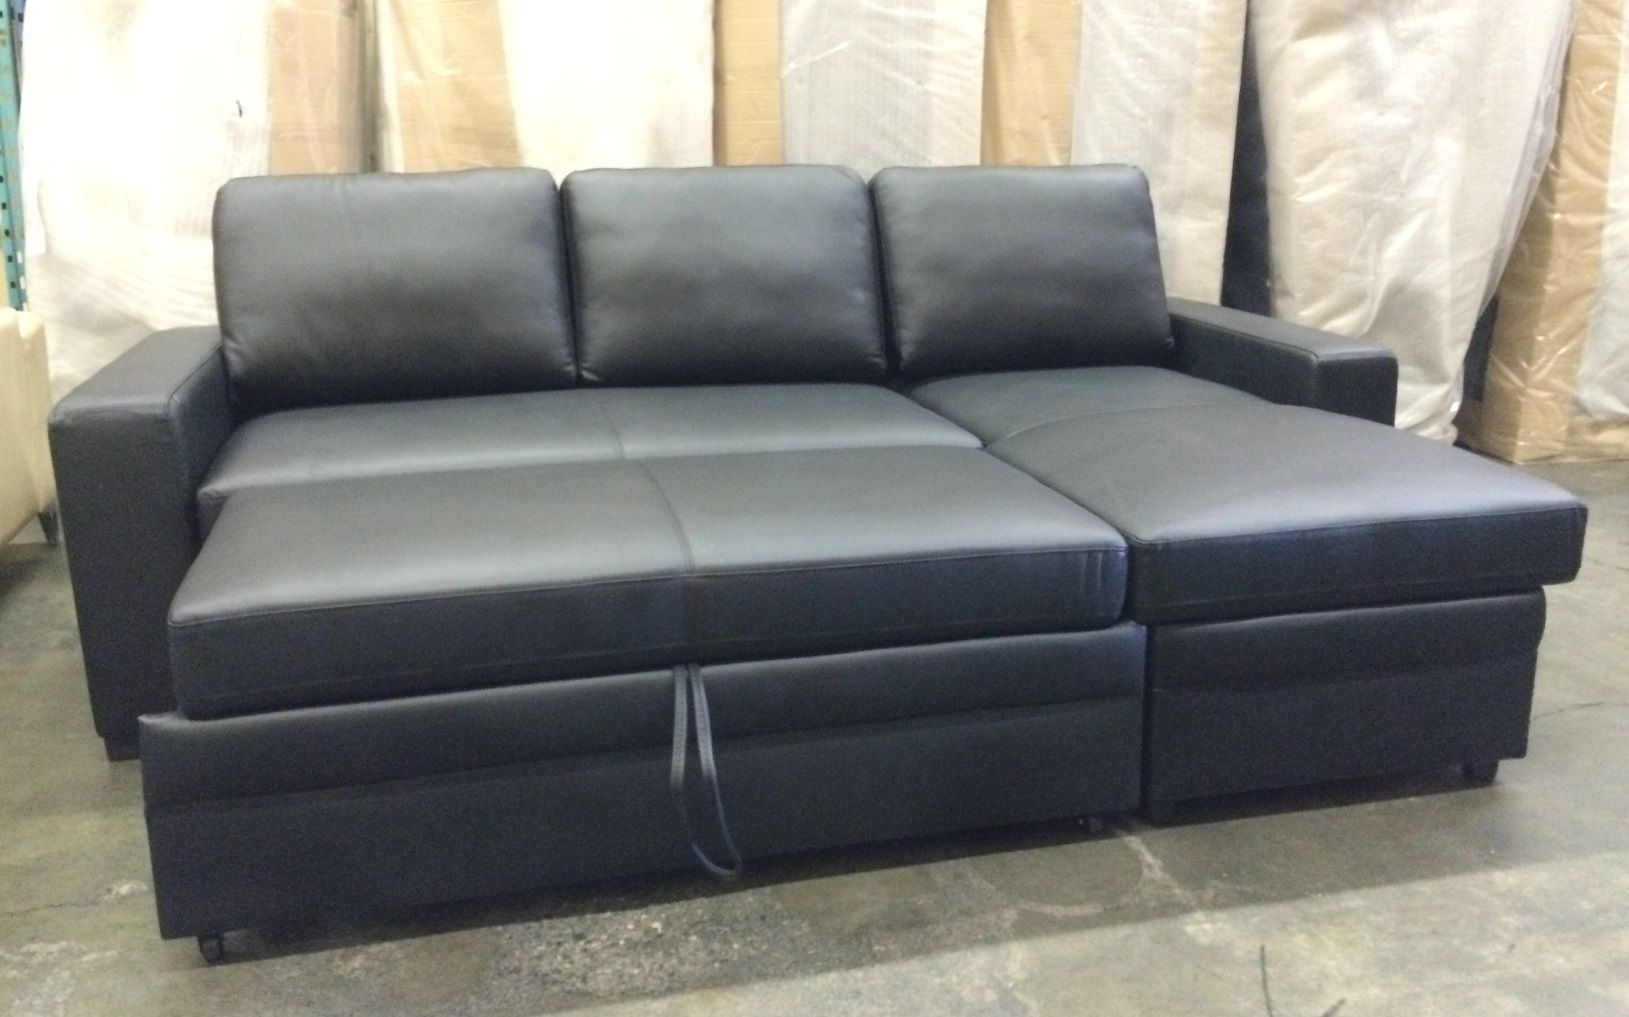 Leather Sectional Sofa Beds Leather Sofa Bed Sofa Sofa Inspiration